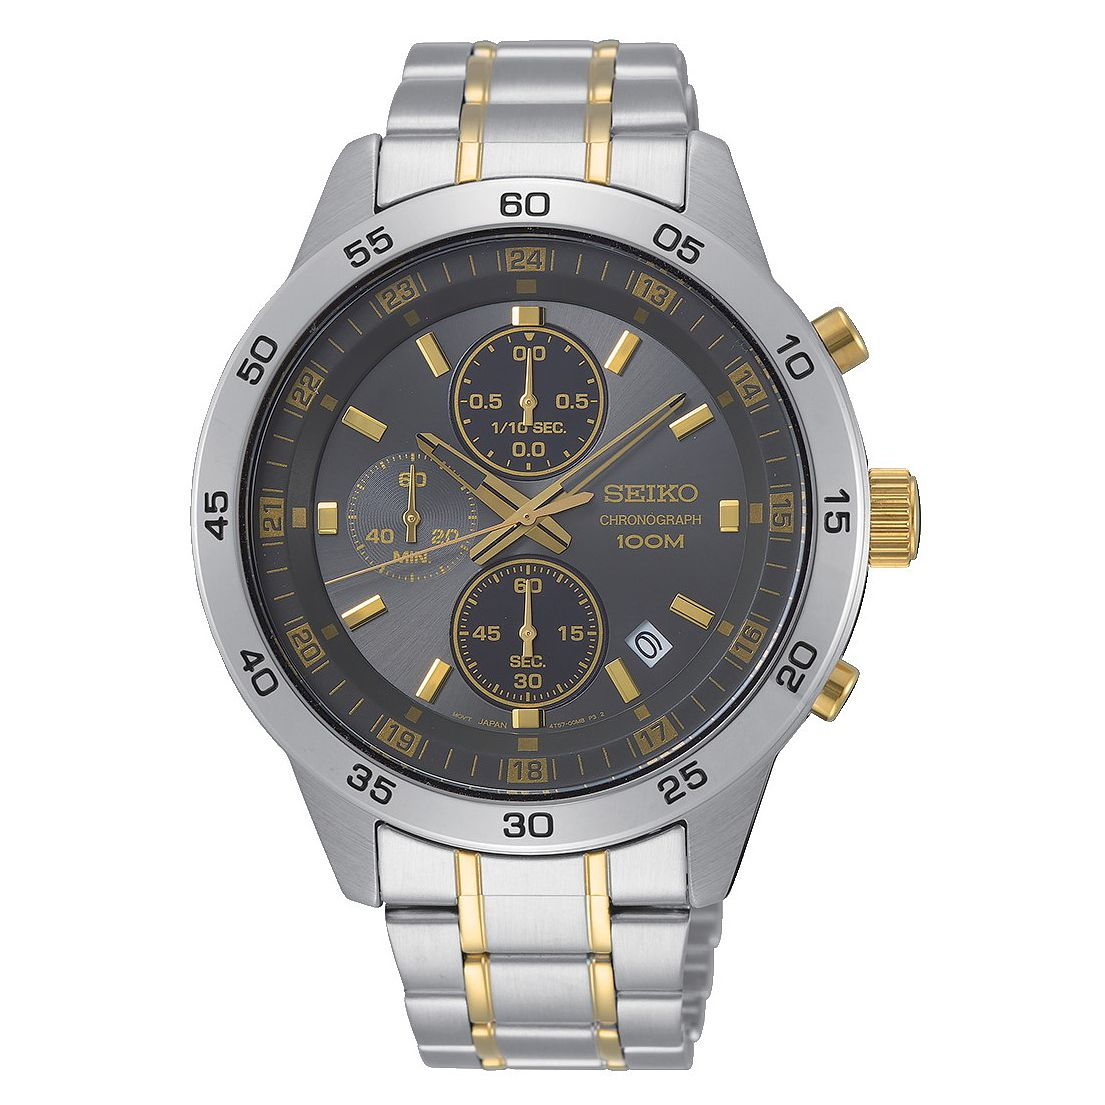 Seiko Men's Grey Chronograph Dial Two Tone Bracelet Watch - Product number 2948478